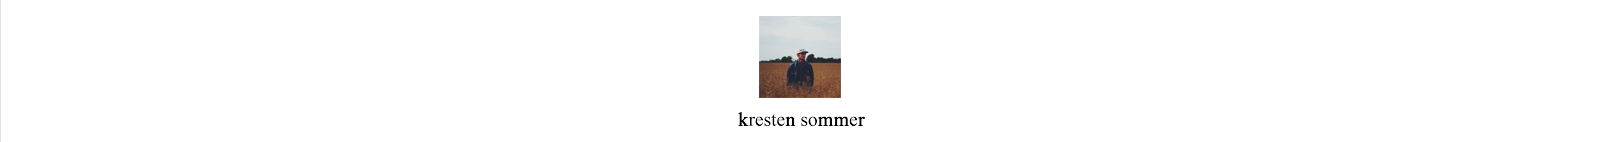 KRESTEN SOMMER PHOTOGRAPHY